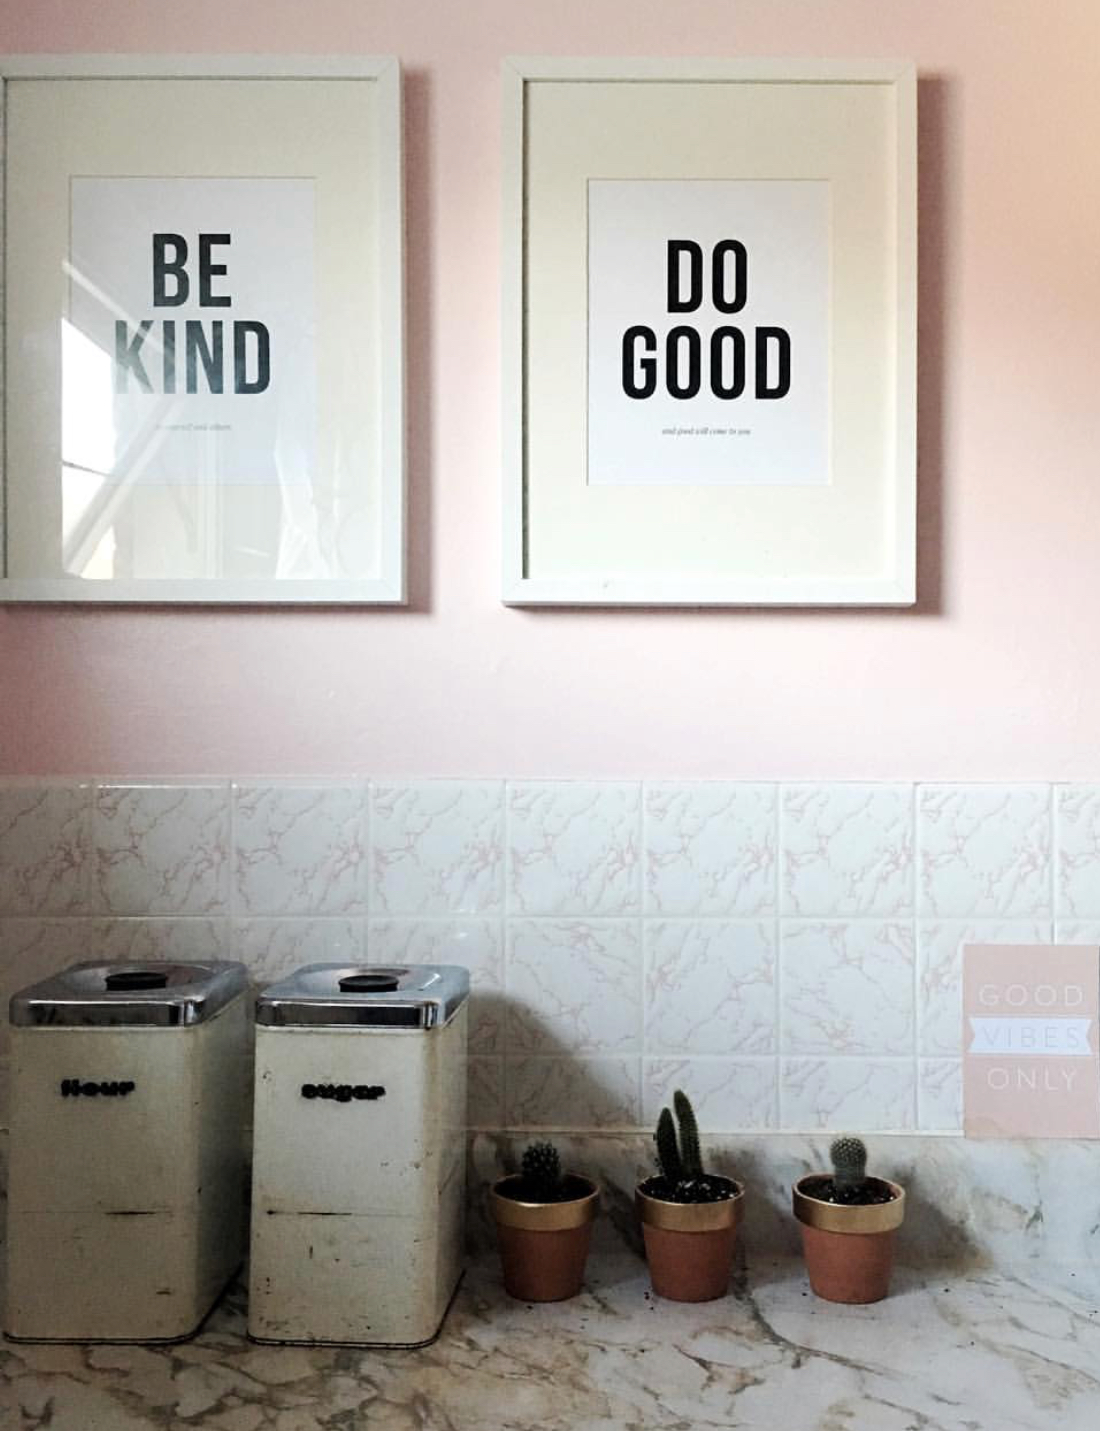 pictures on the wall with positive message